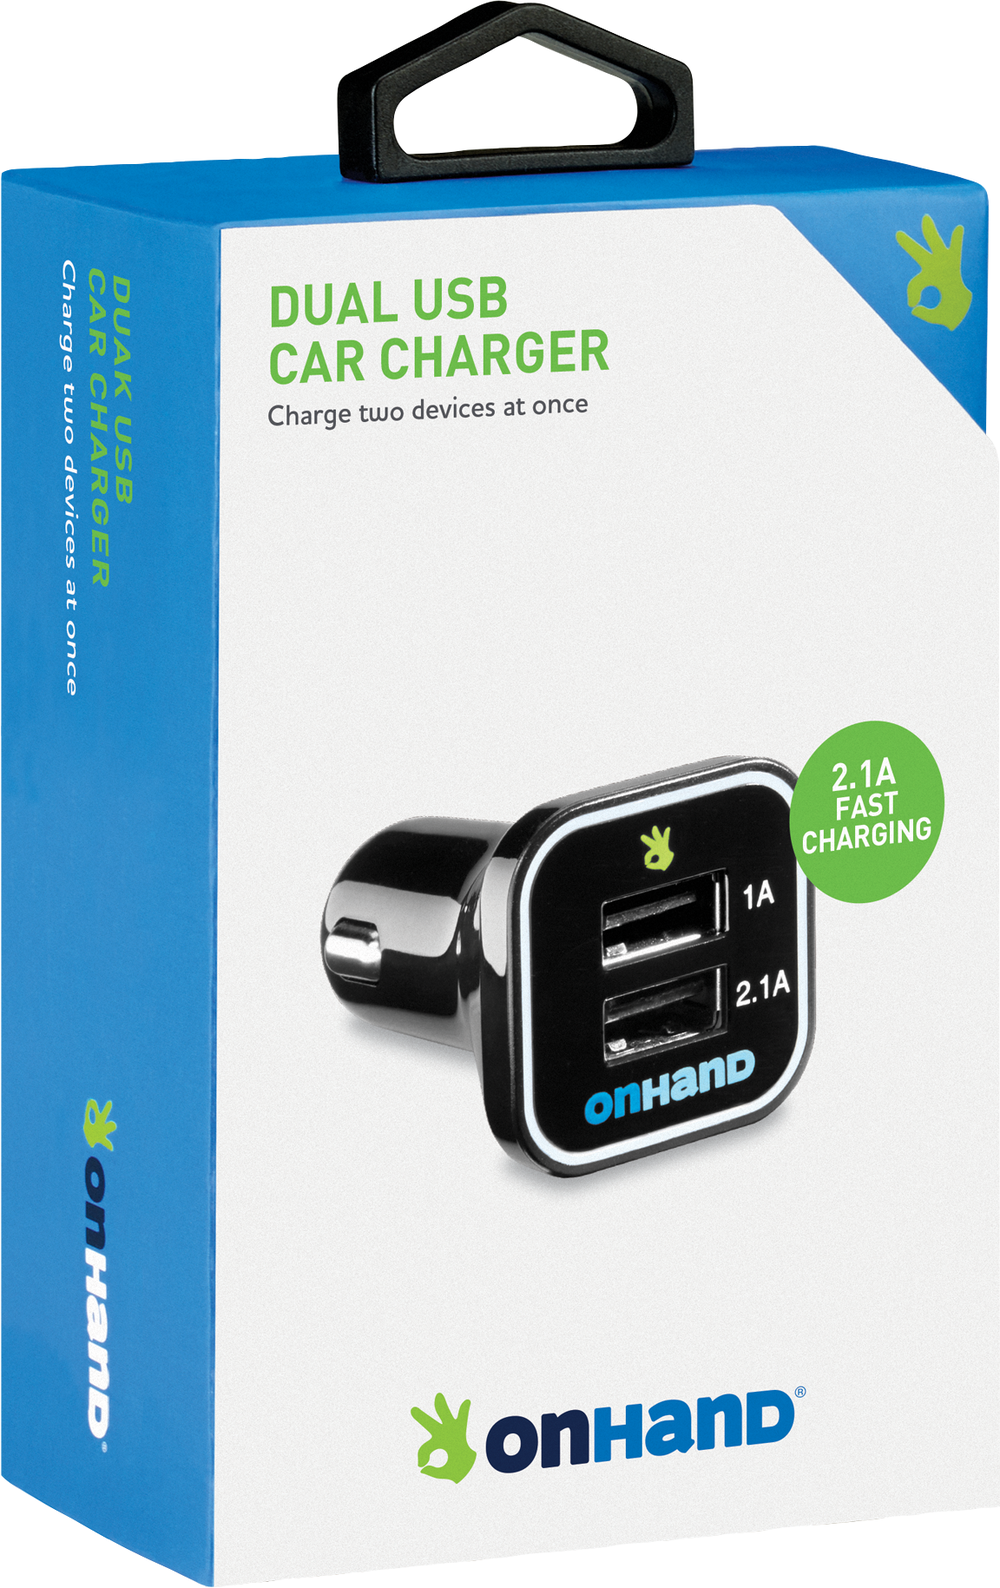 OnHand Car Charger - Black BP